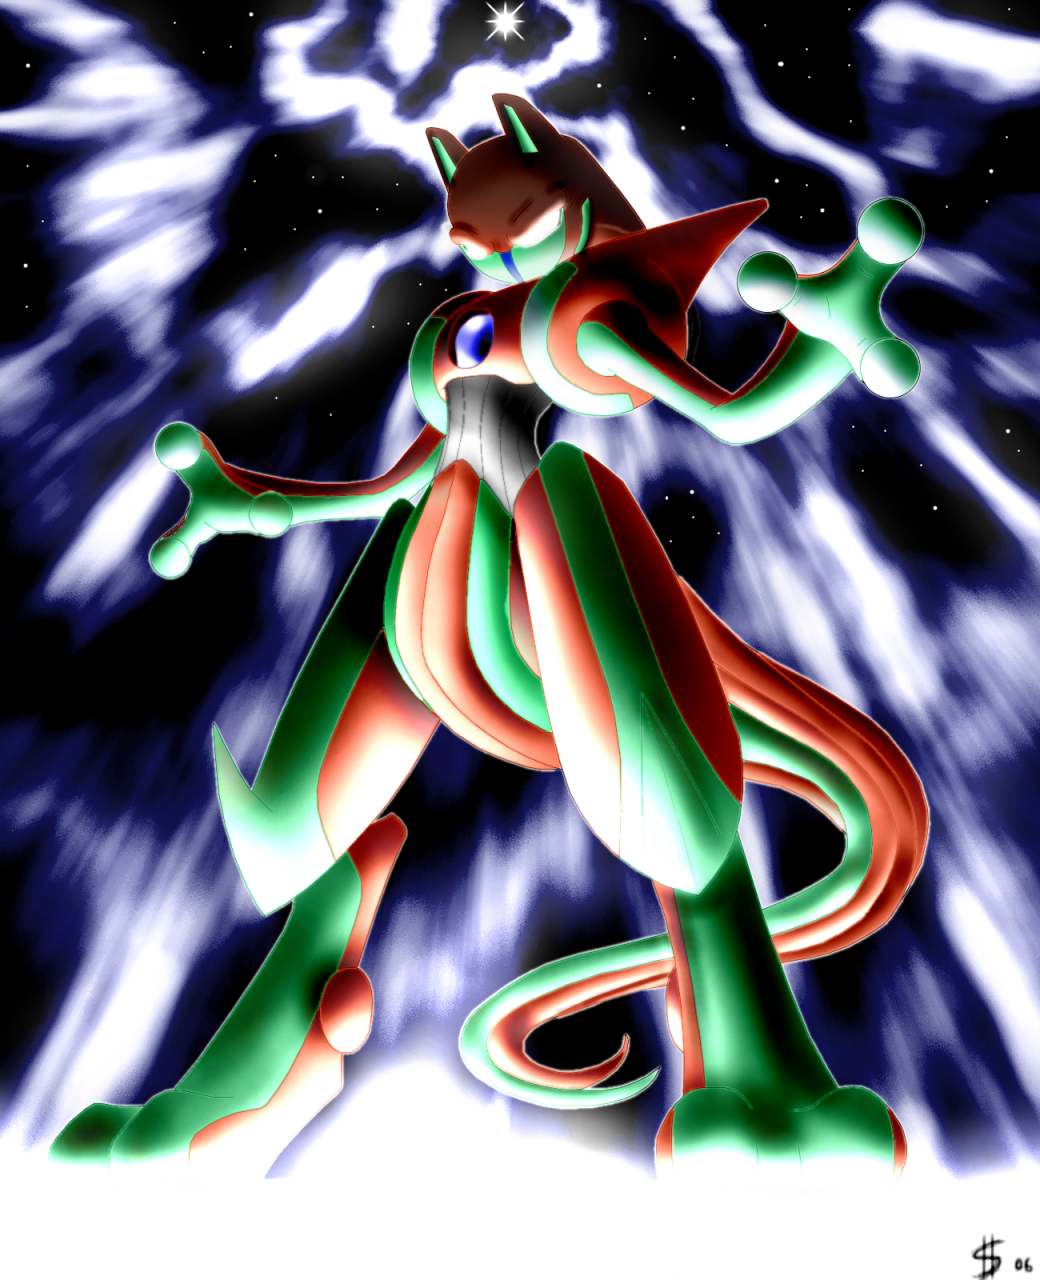 Deoxys infects Mewtwo by Esepibe - Sharenator.com